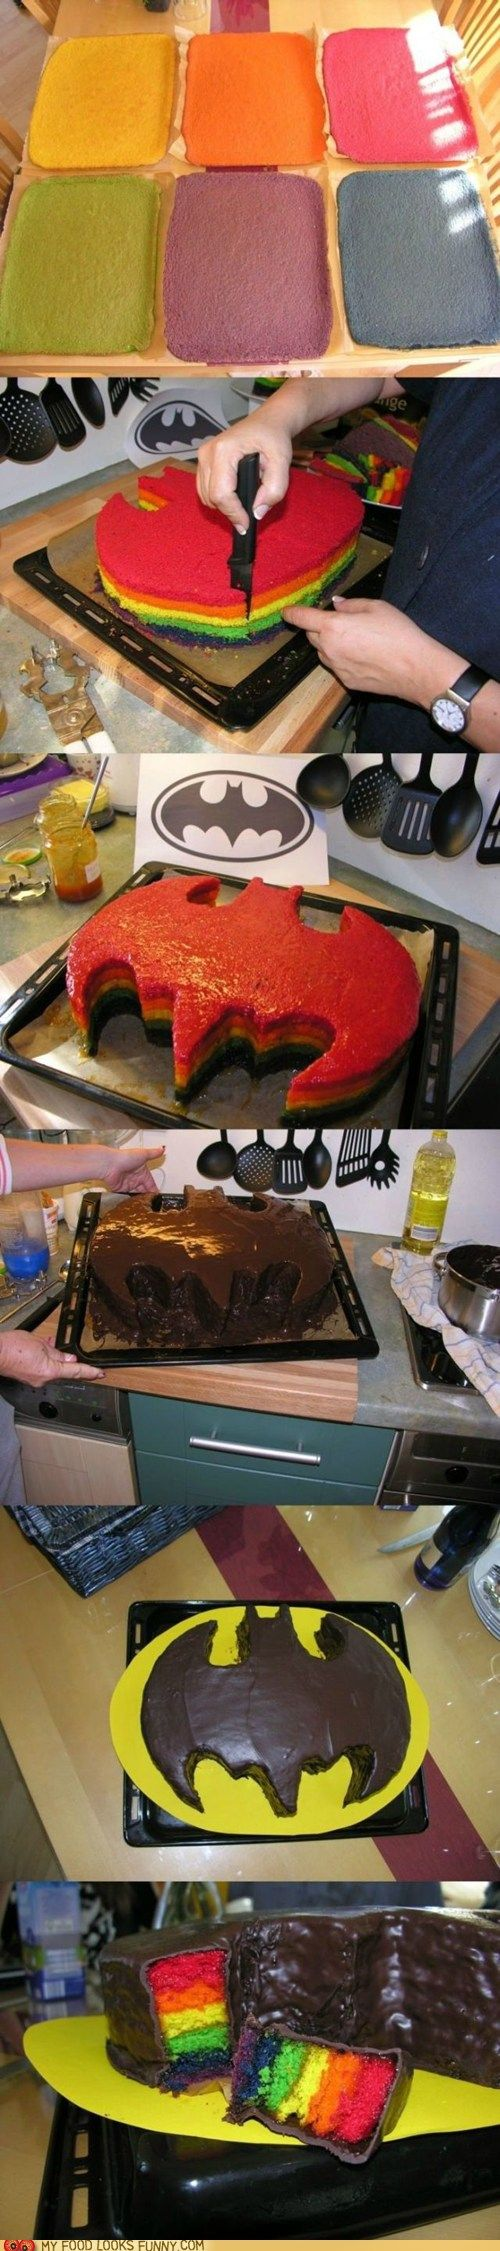 to pin this to Batman or Food....?